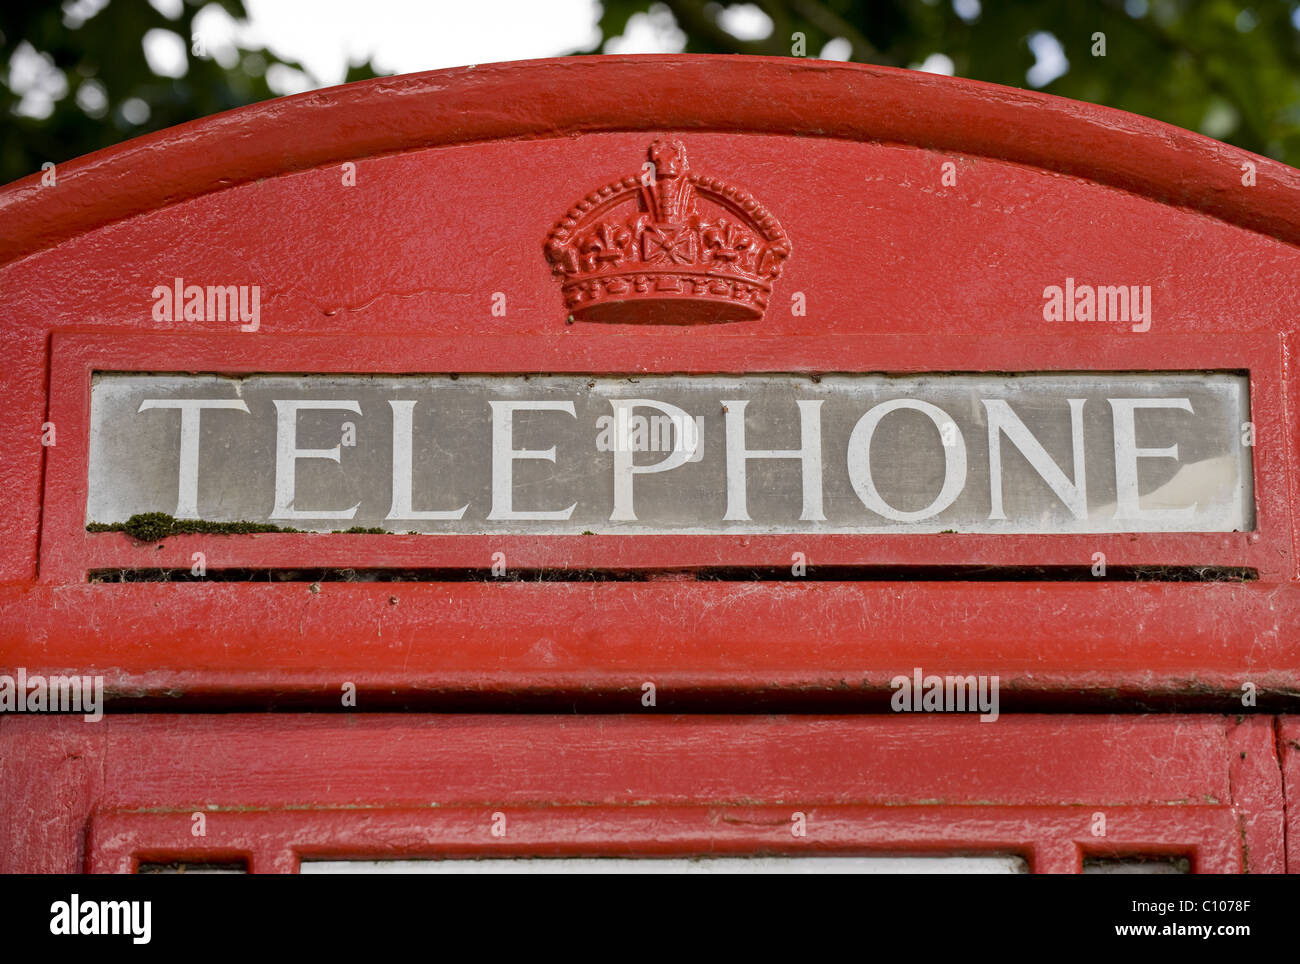 The domed roof of a red  K6 telephone box. - Stock Image